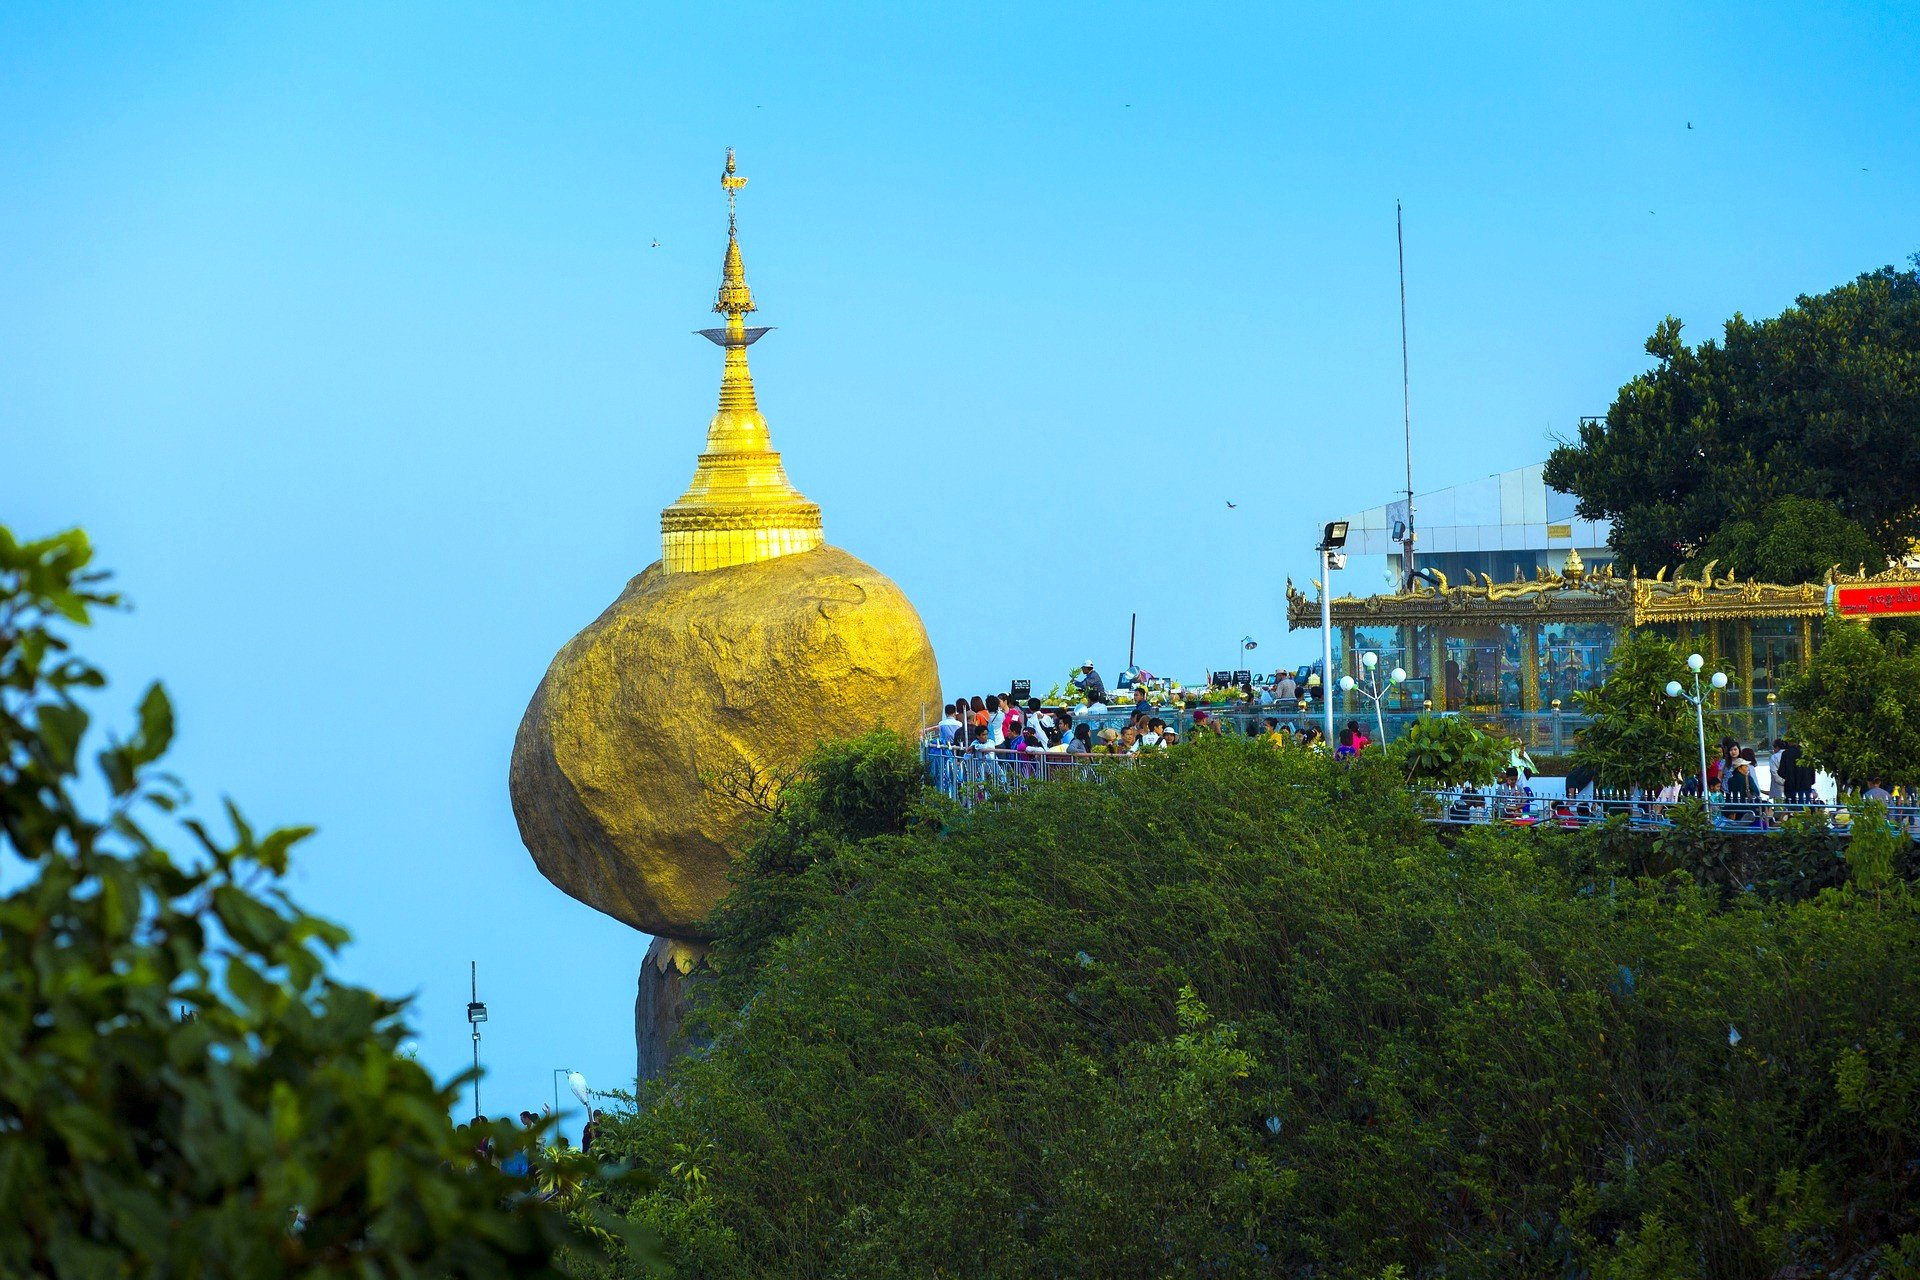 The Golden Rock Pagoda attracts a lot of visitors